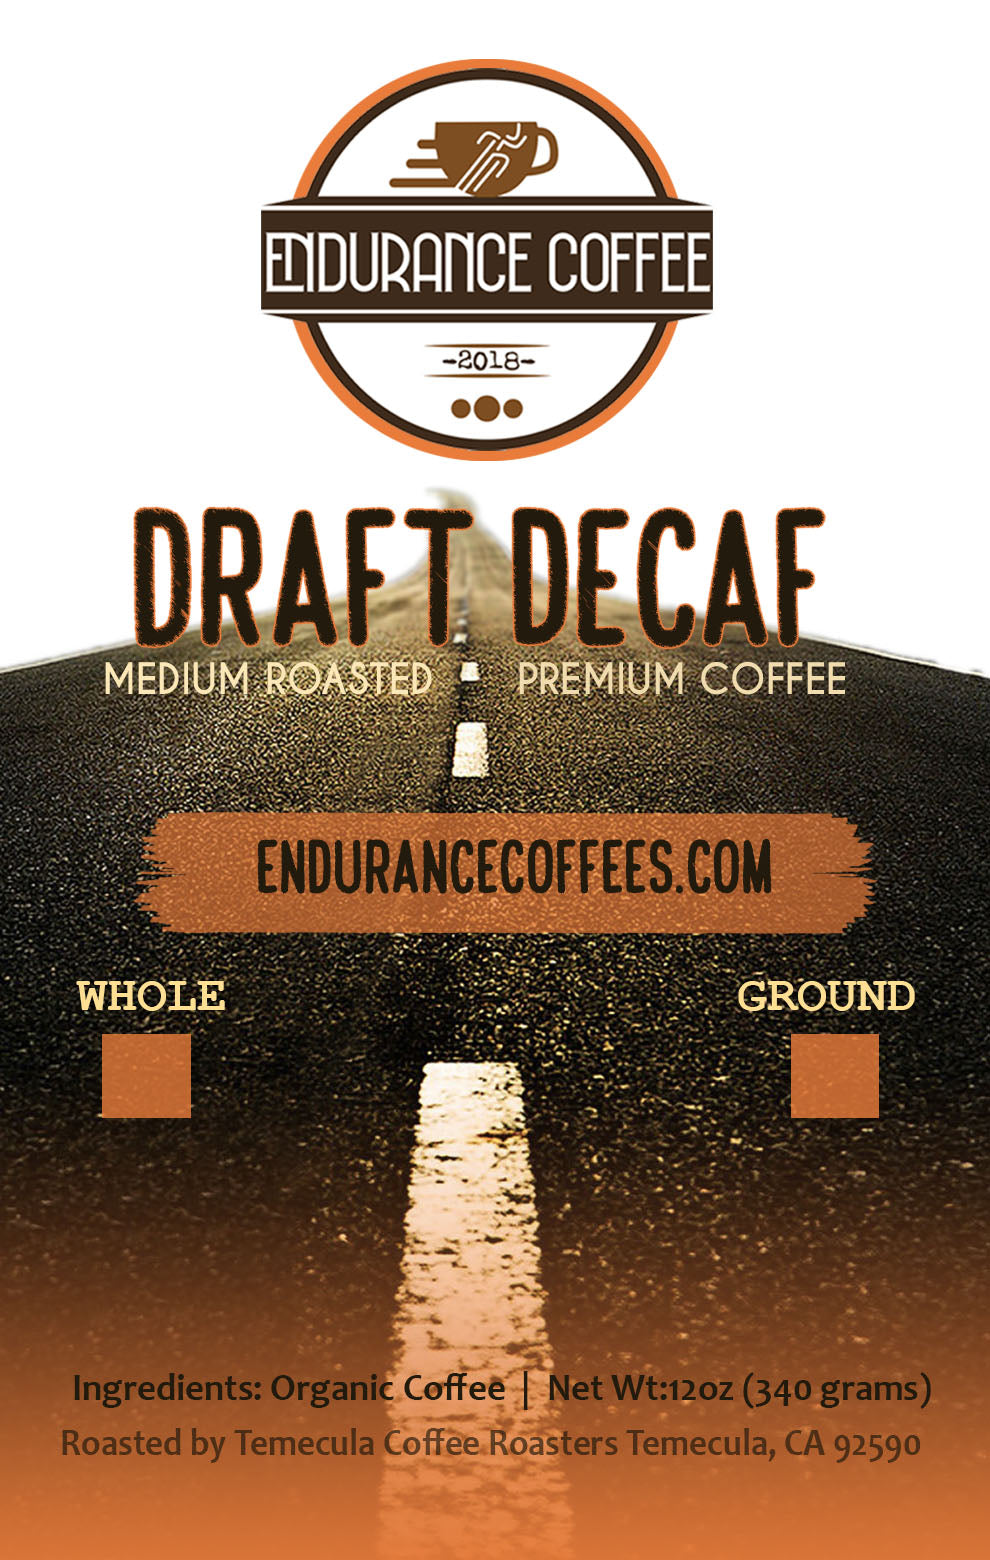 Draft Decaf - Medium